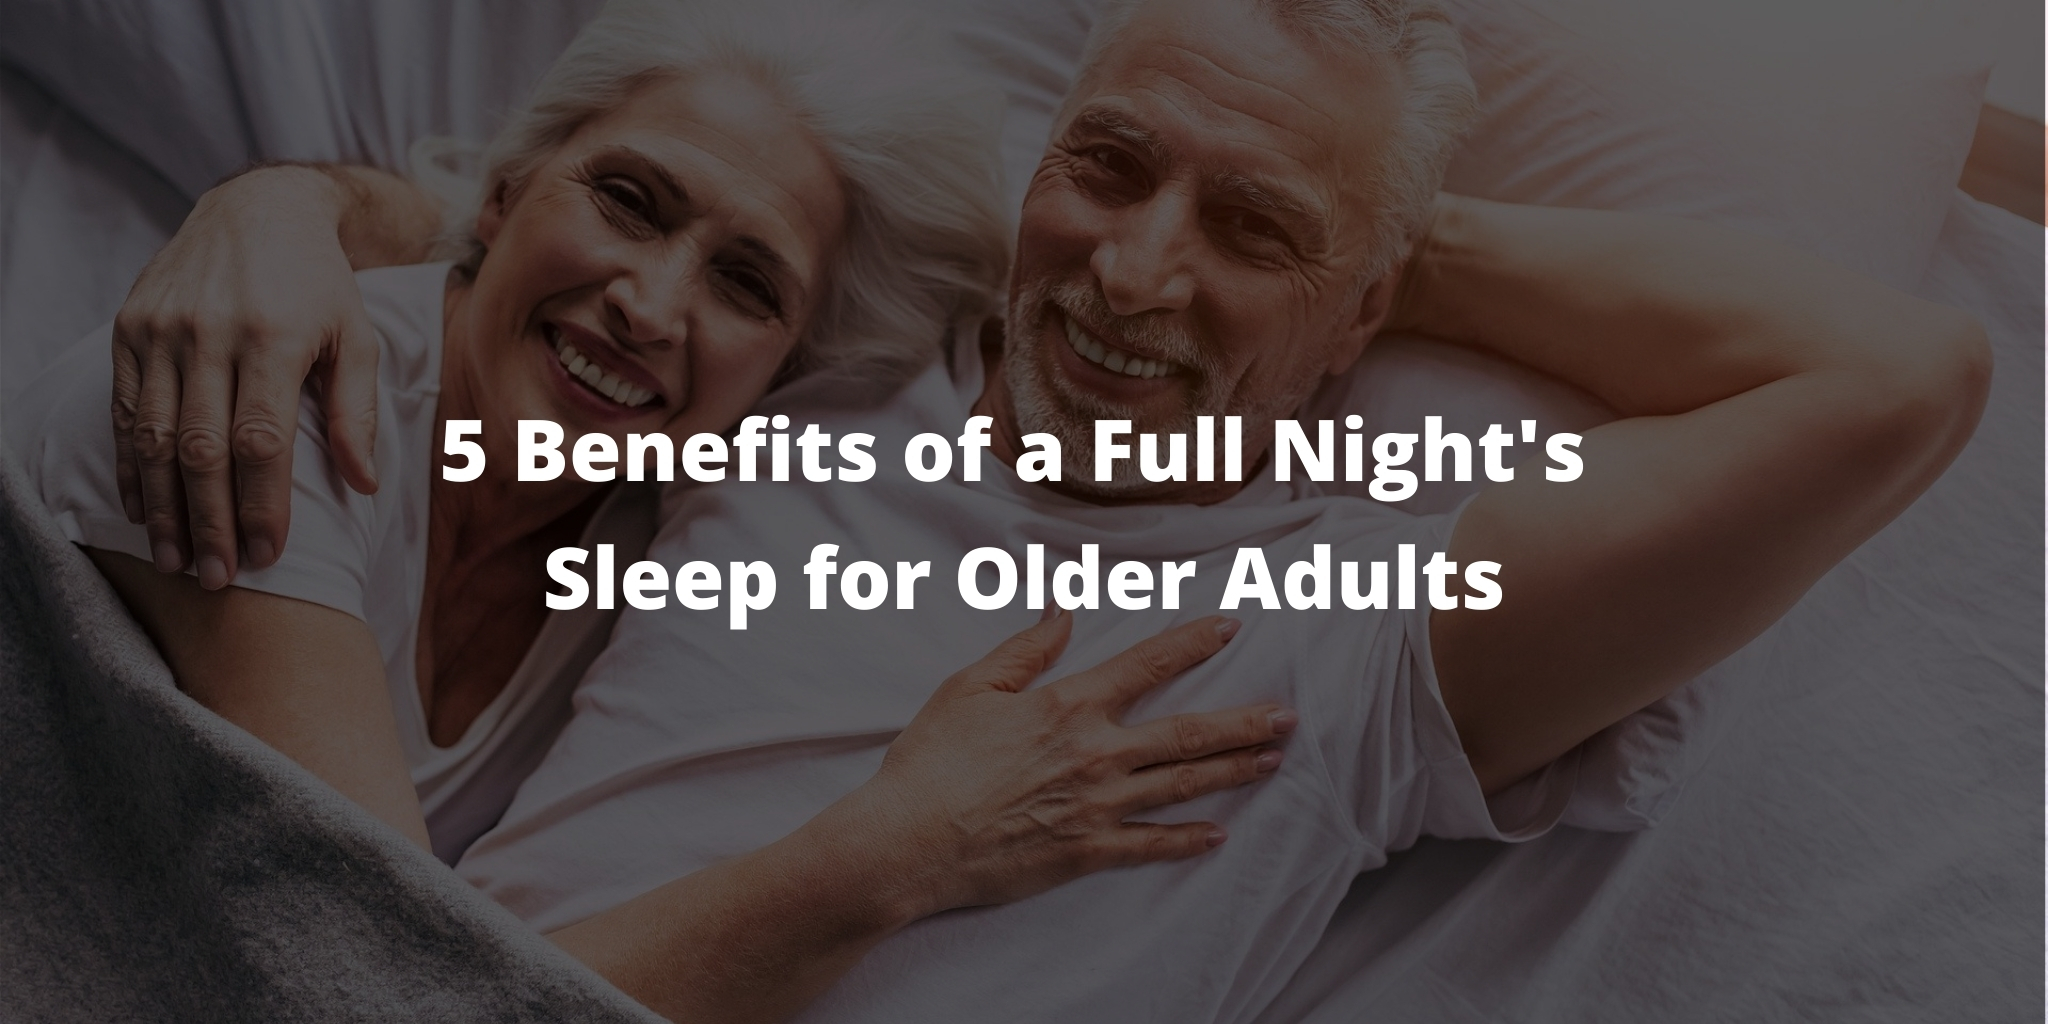 5 Benefits of a Full Night's Sleep for Older Adults